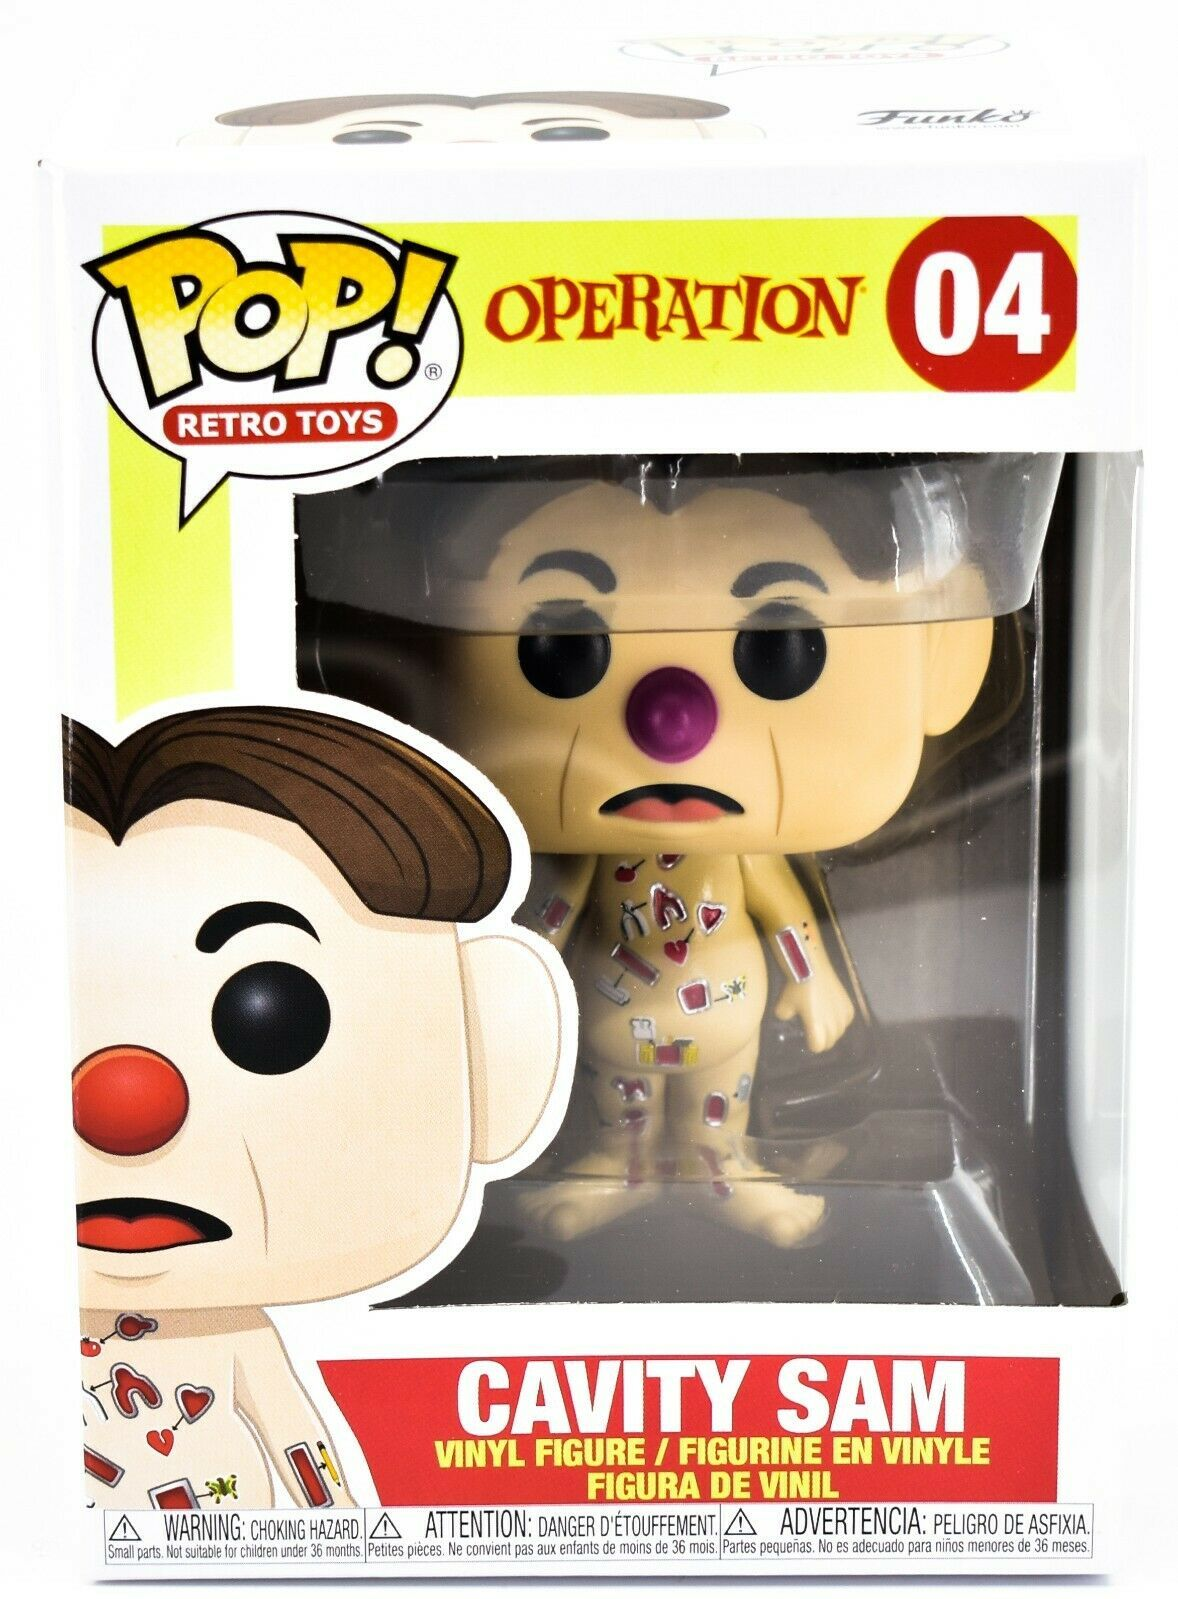 Funko Pop! Retro Toys Operation Cavity Sam #04 Vinyl Figure